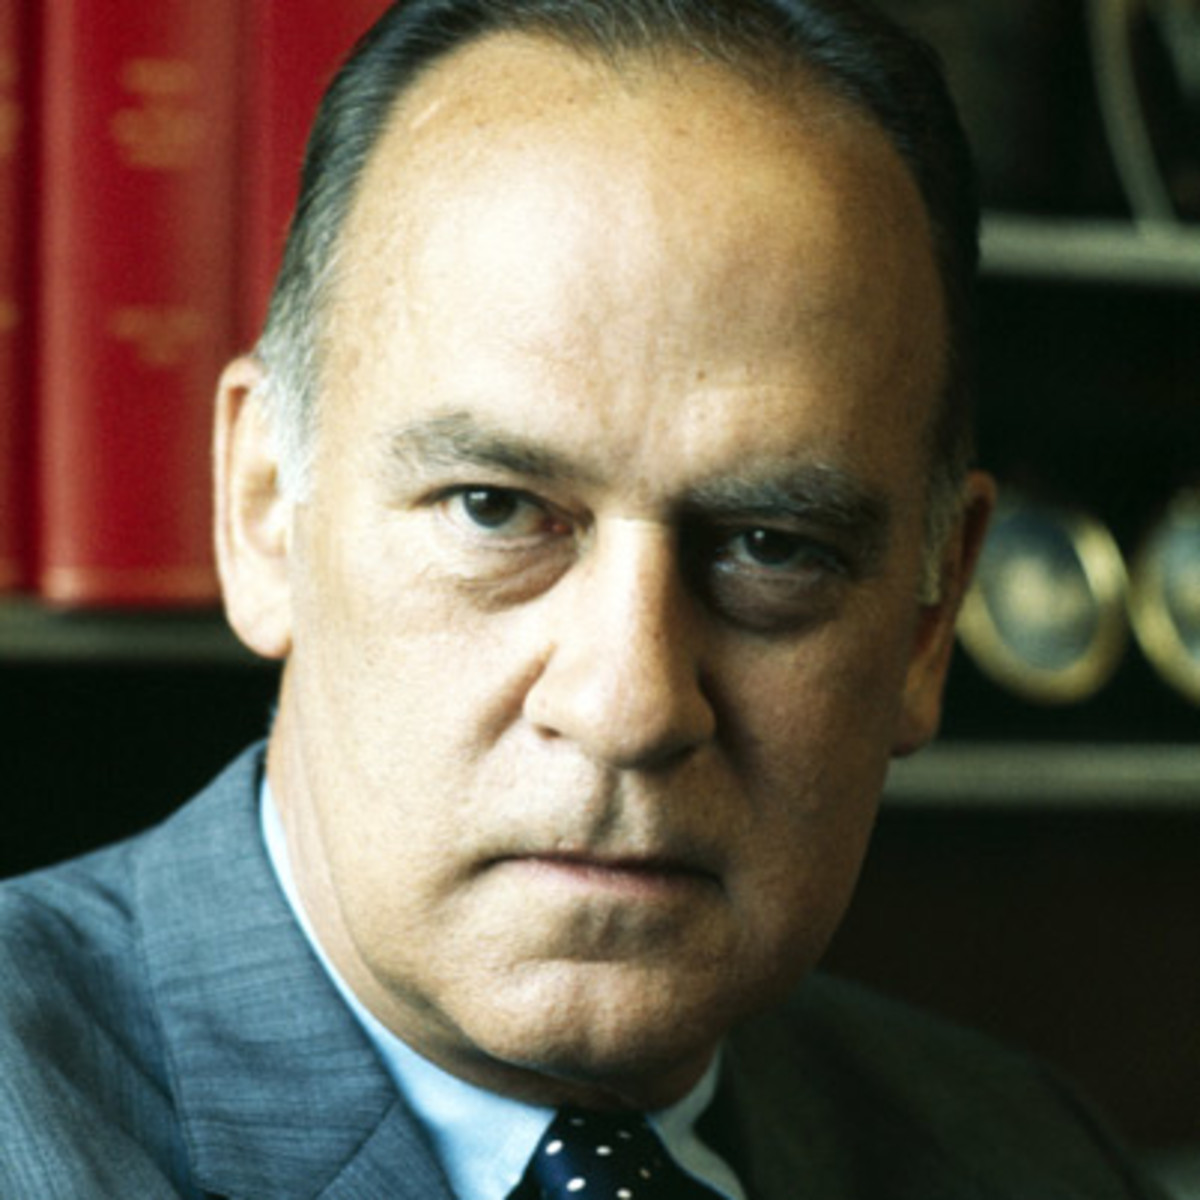 Justice Potter Stewart. He knows it when he sees it. What have you seen, Justice Stewart? What. Have. You. Seen?